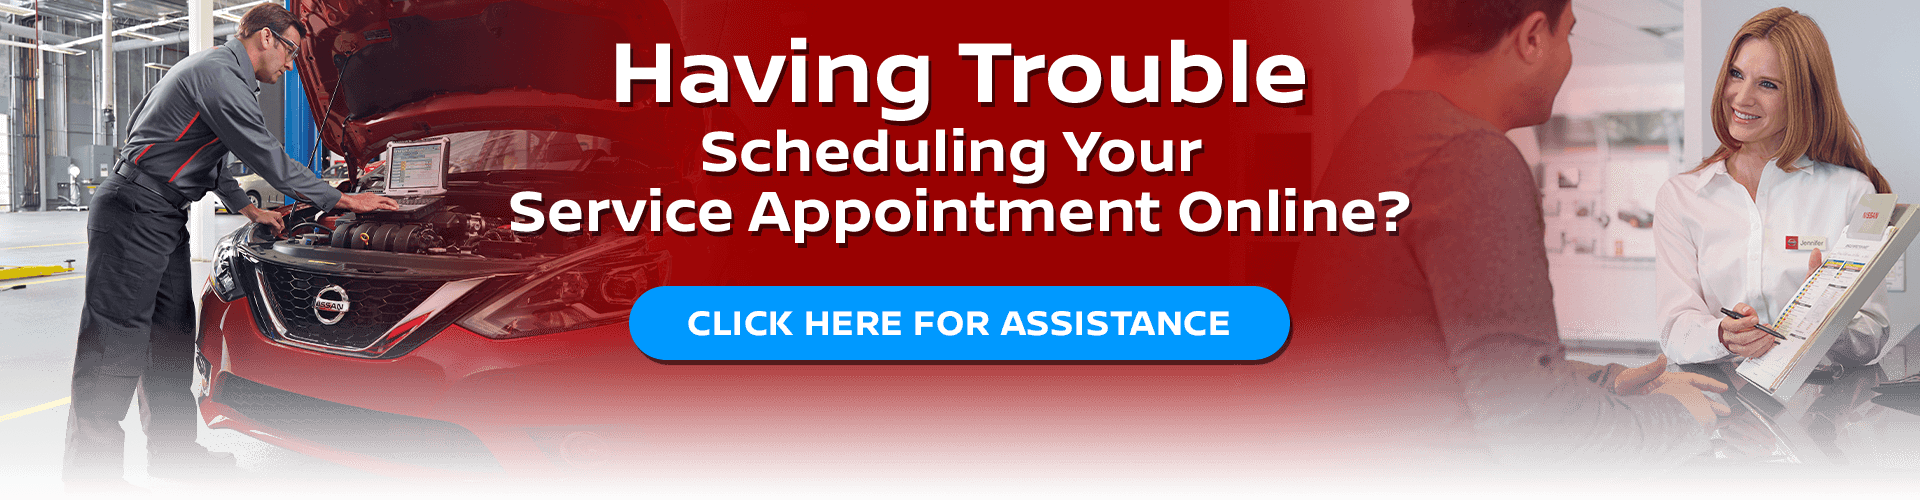 Having trouble scheduling your service appointment online? Click here for assistance